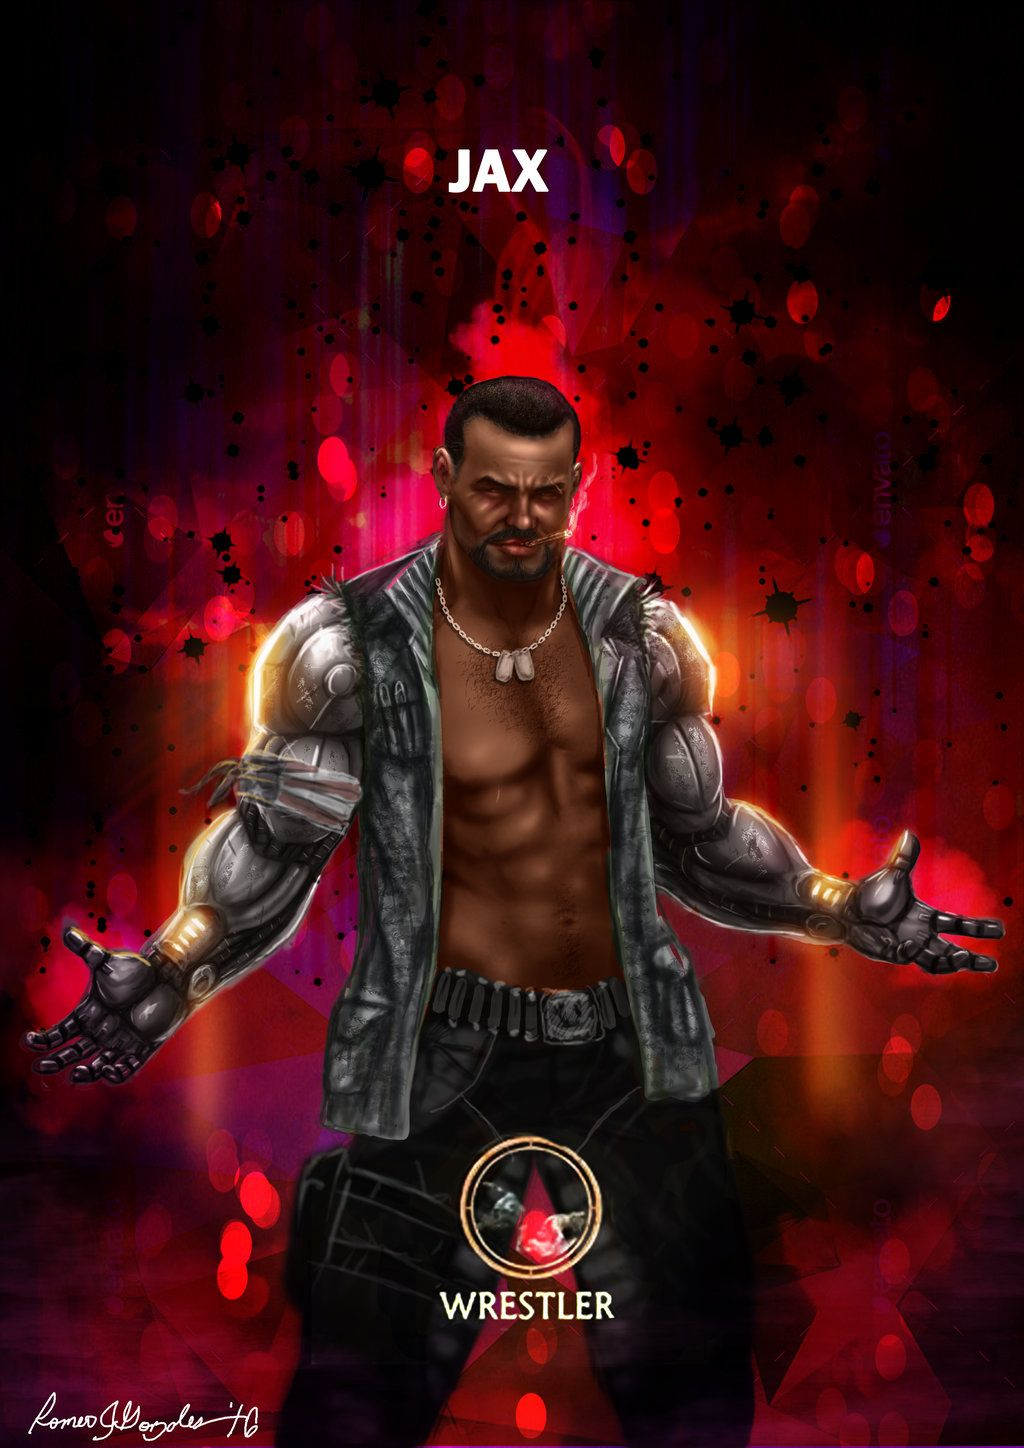 Mortal Kombat X Jax Wrestler Variation By Grapiqkad On Deviantart